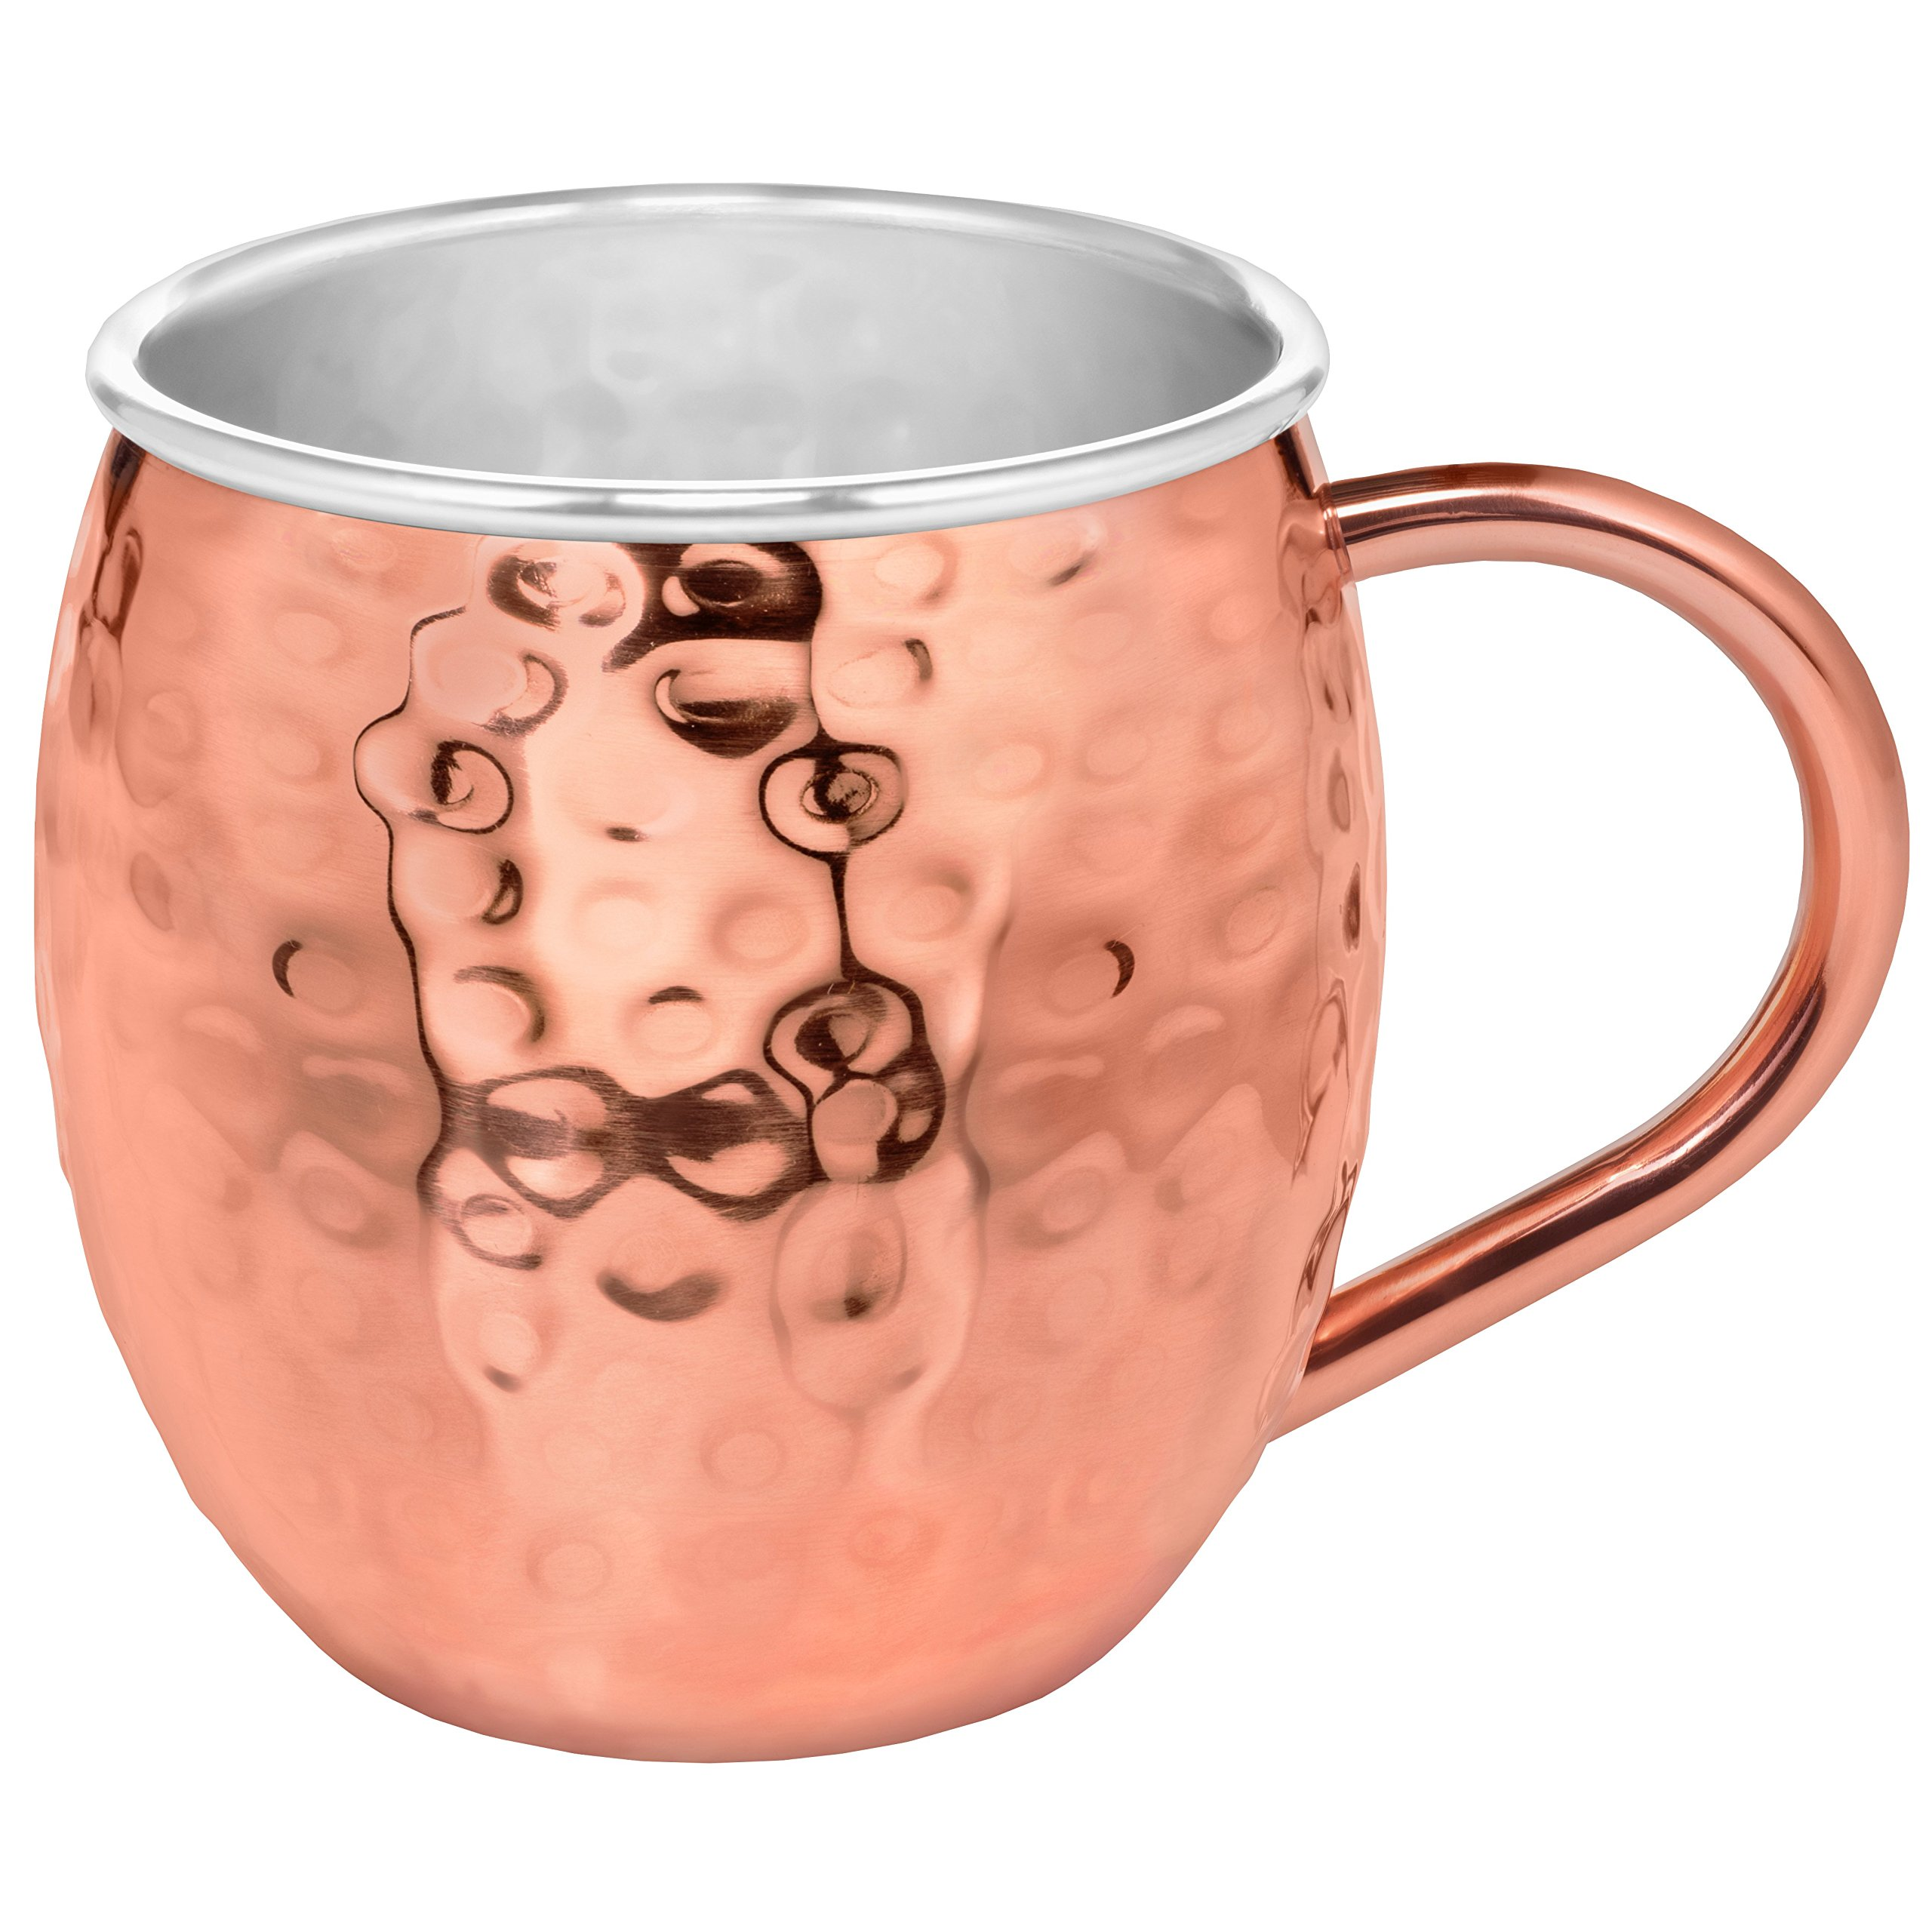 Set of 2 Moscow Mule Copper Mugs with Stainless-Steel Lining | Set of 2 Moscow Mule Mugs with Copper Shot Glass | Set of 2 Mule Mugs Lined with Stainless-Steel, Mint Julep Mugs for Home Bar by Urban Vintage LA (Image #2)